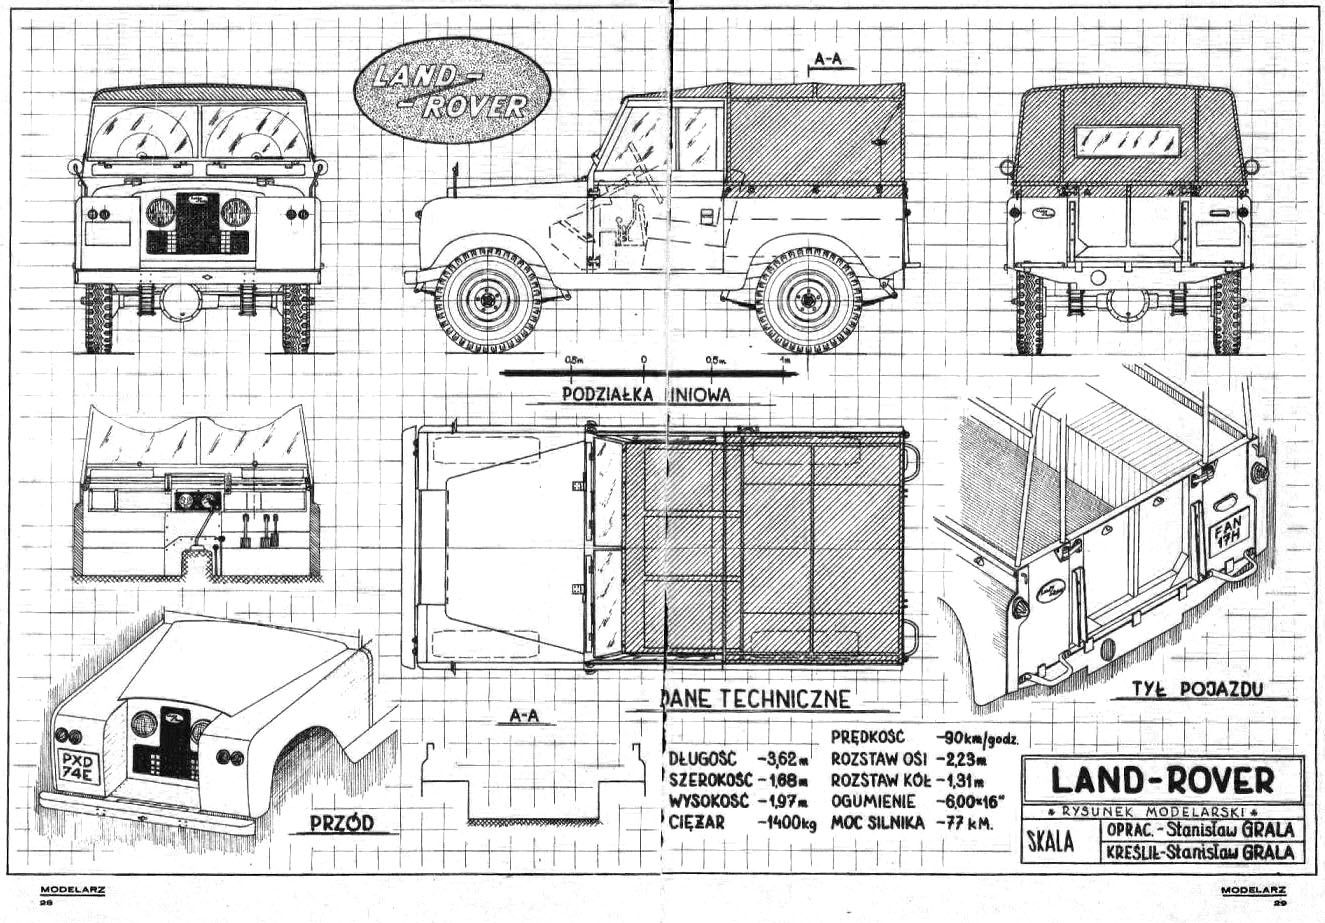 Land Rover Series Iia 1961 Smcarsnet Car Blueprints Forum 1957 S1 Wiring Diagram